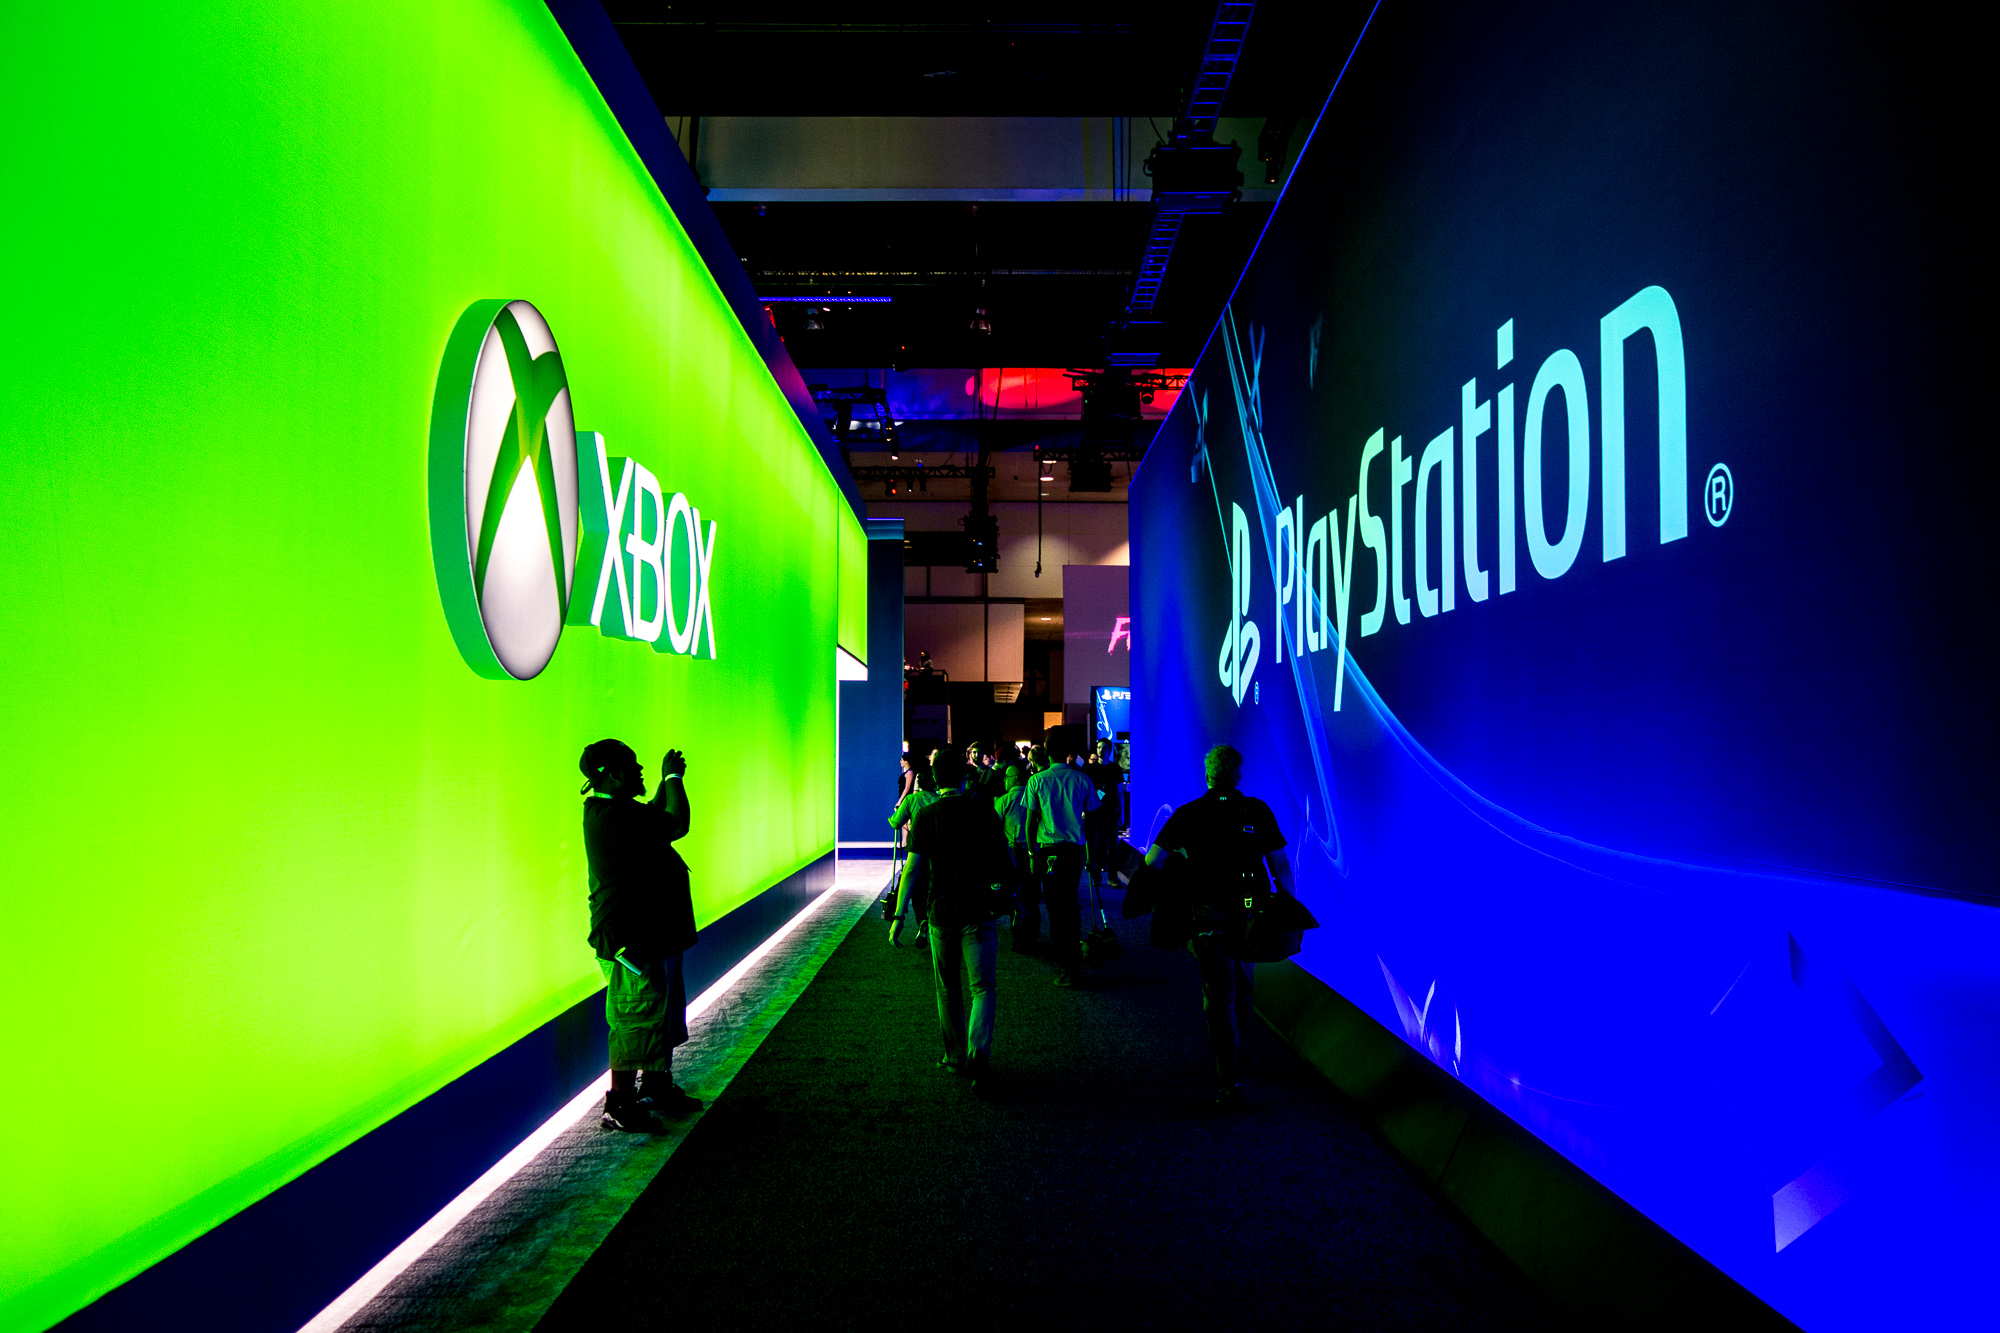 Get an Xbox One or PS4 for $360 Right Now Through Groupon